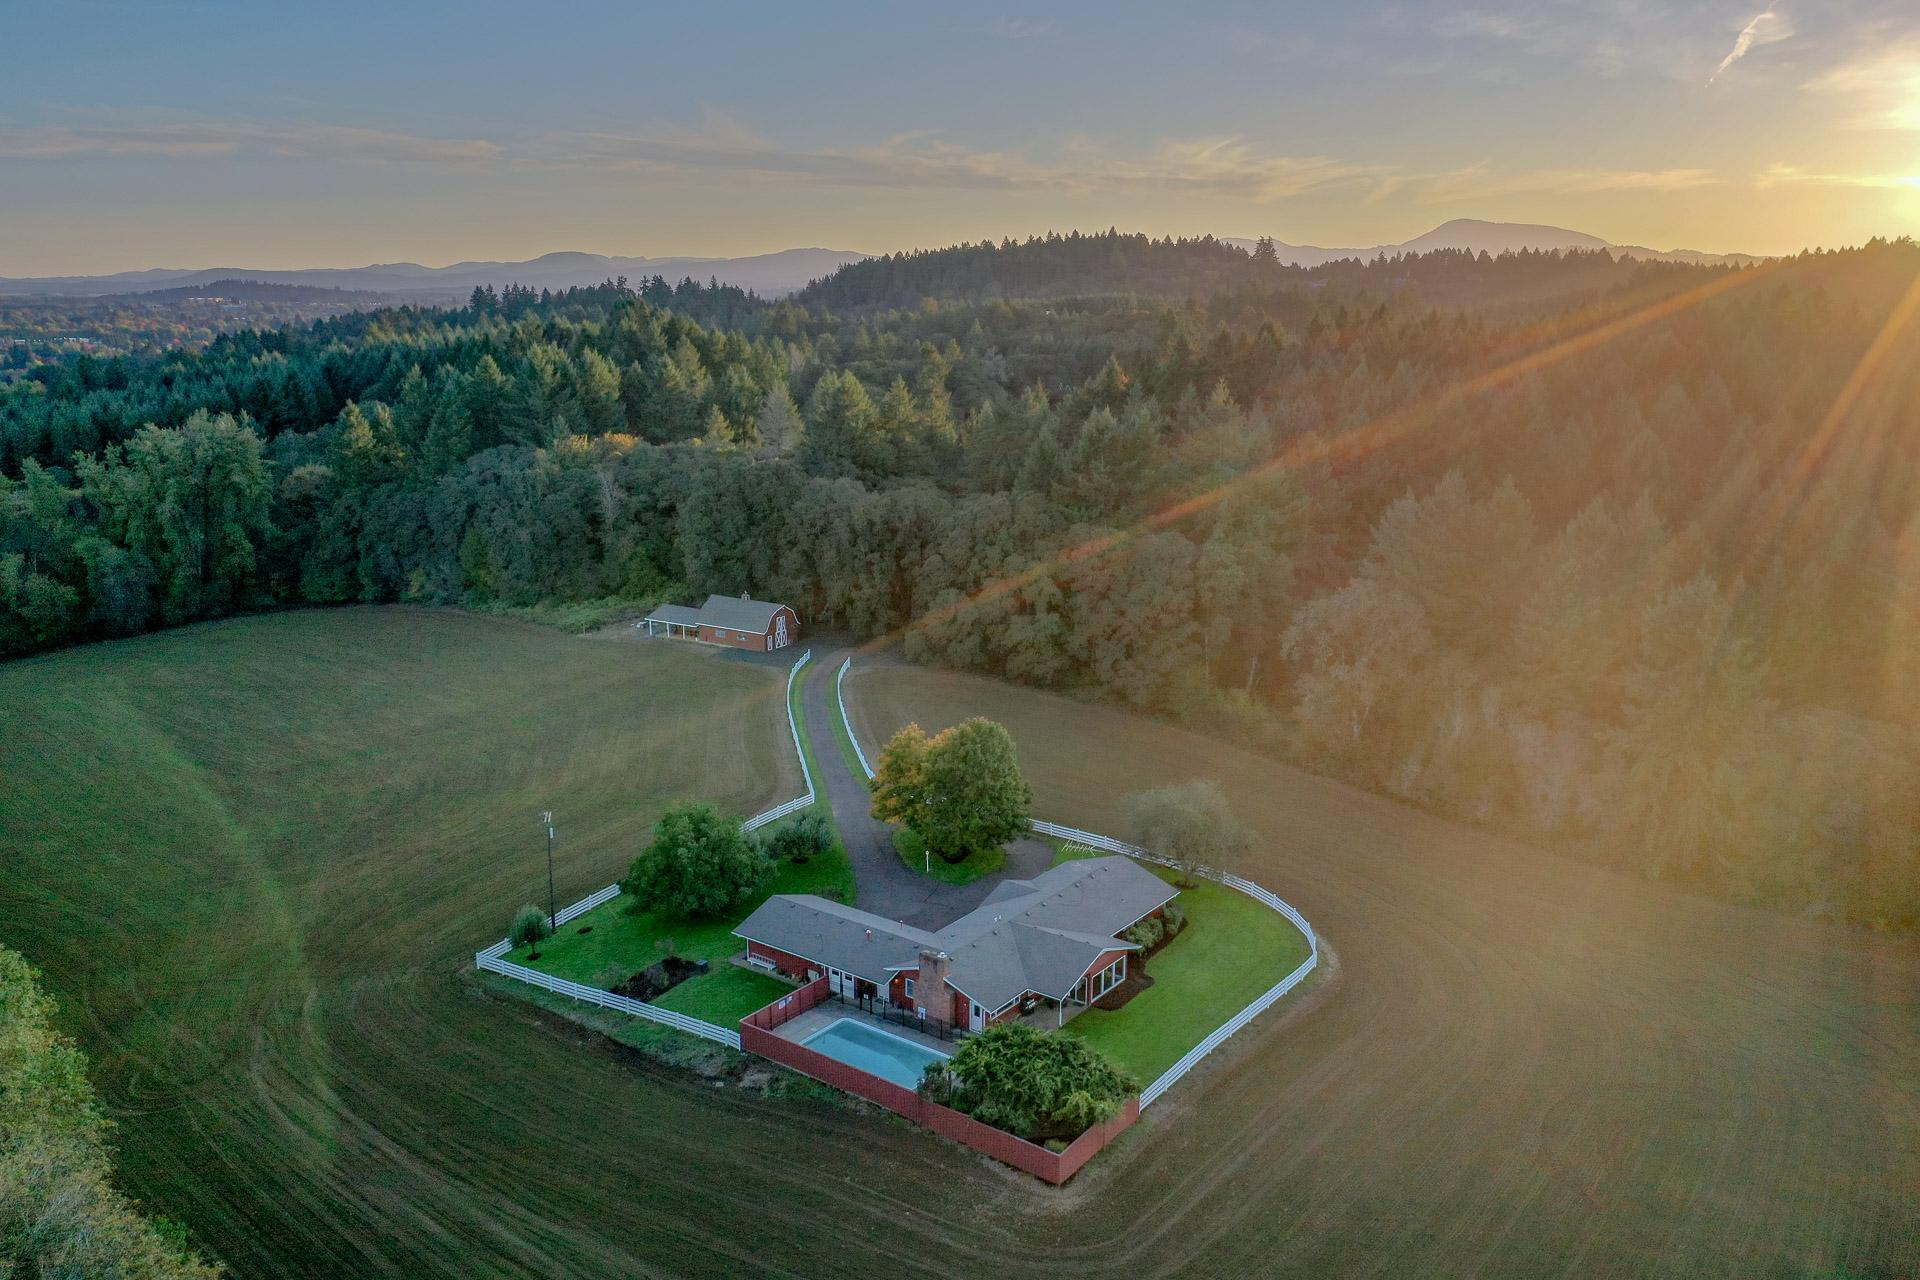 Highland Acres Aerial View of the Barn